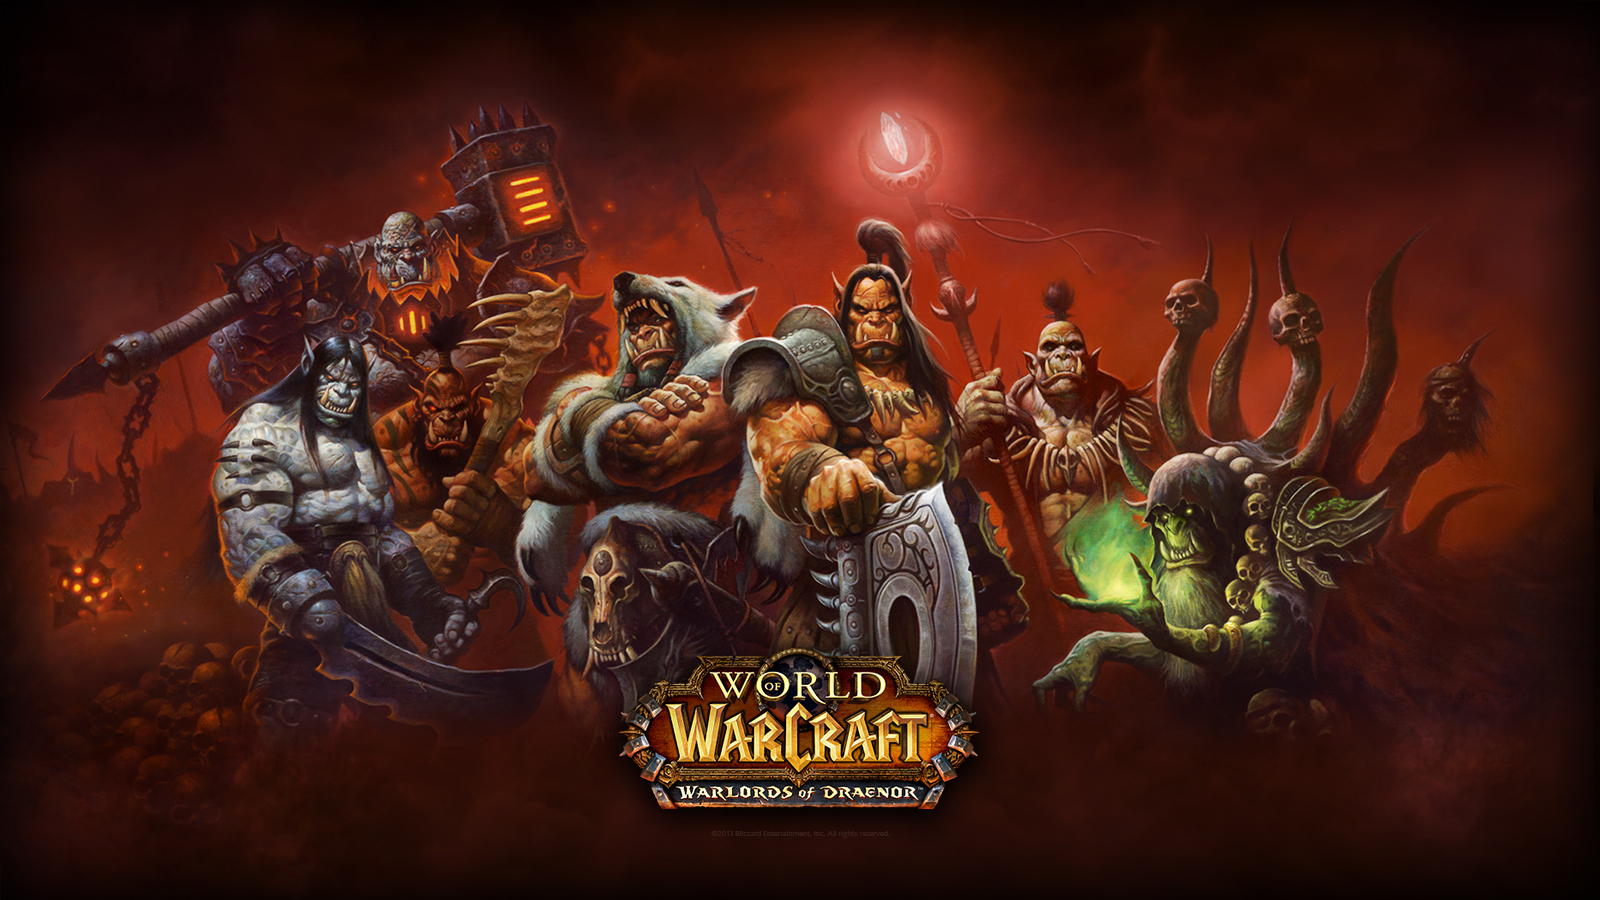 warlords-of-draenor-1600x900